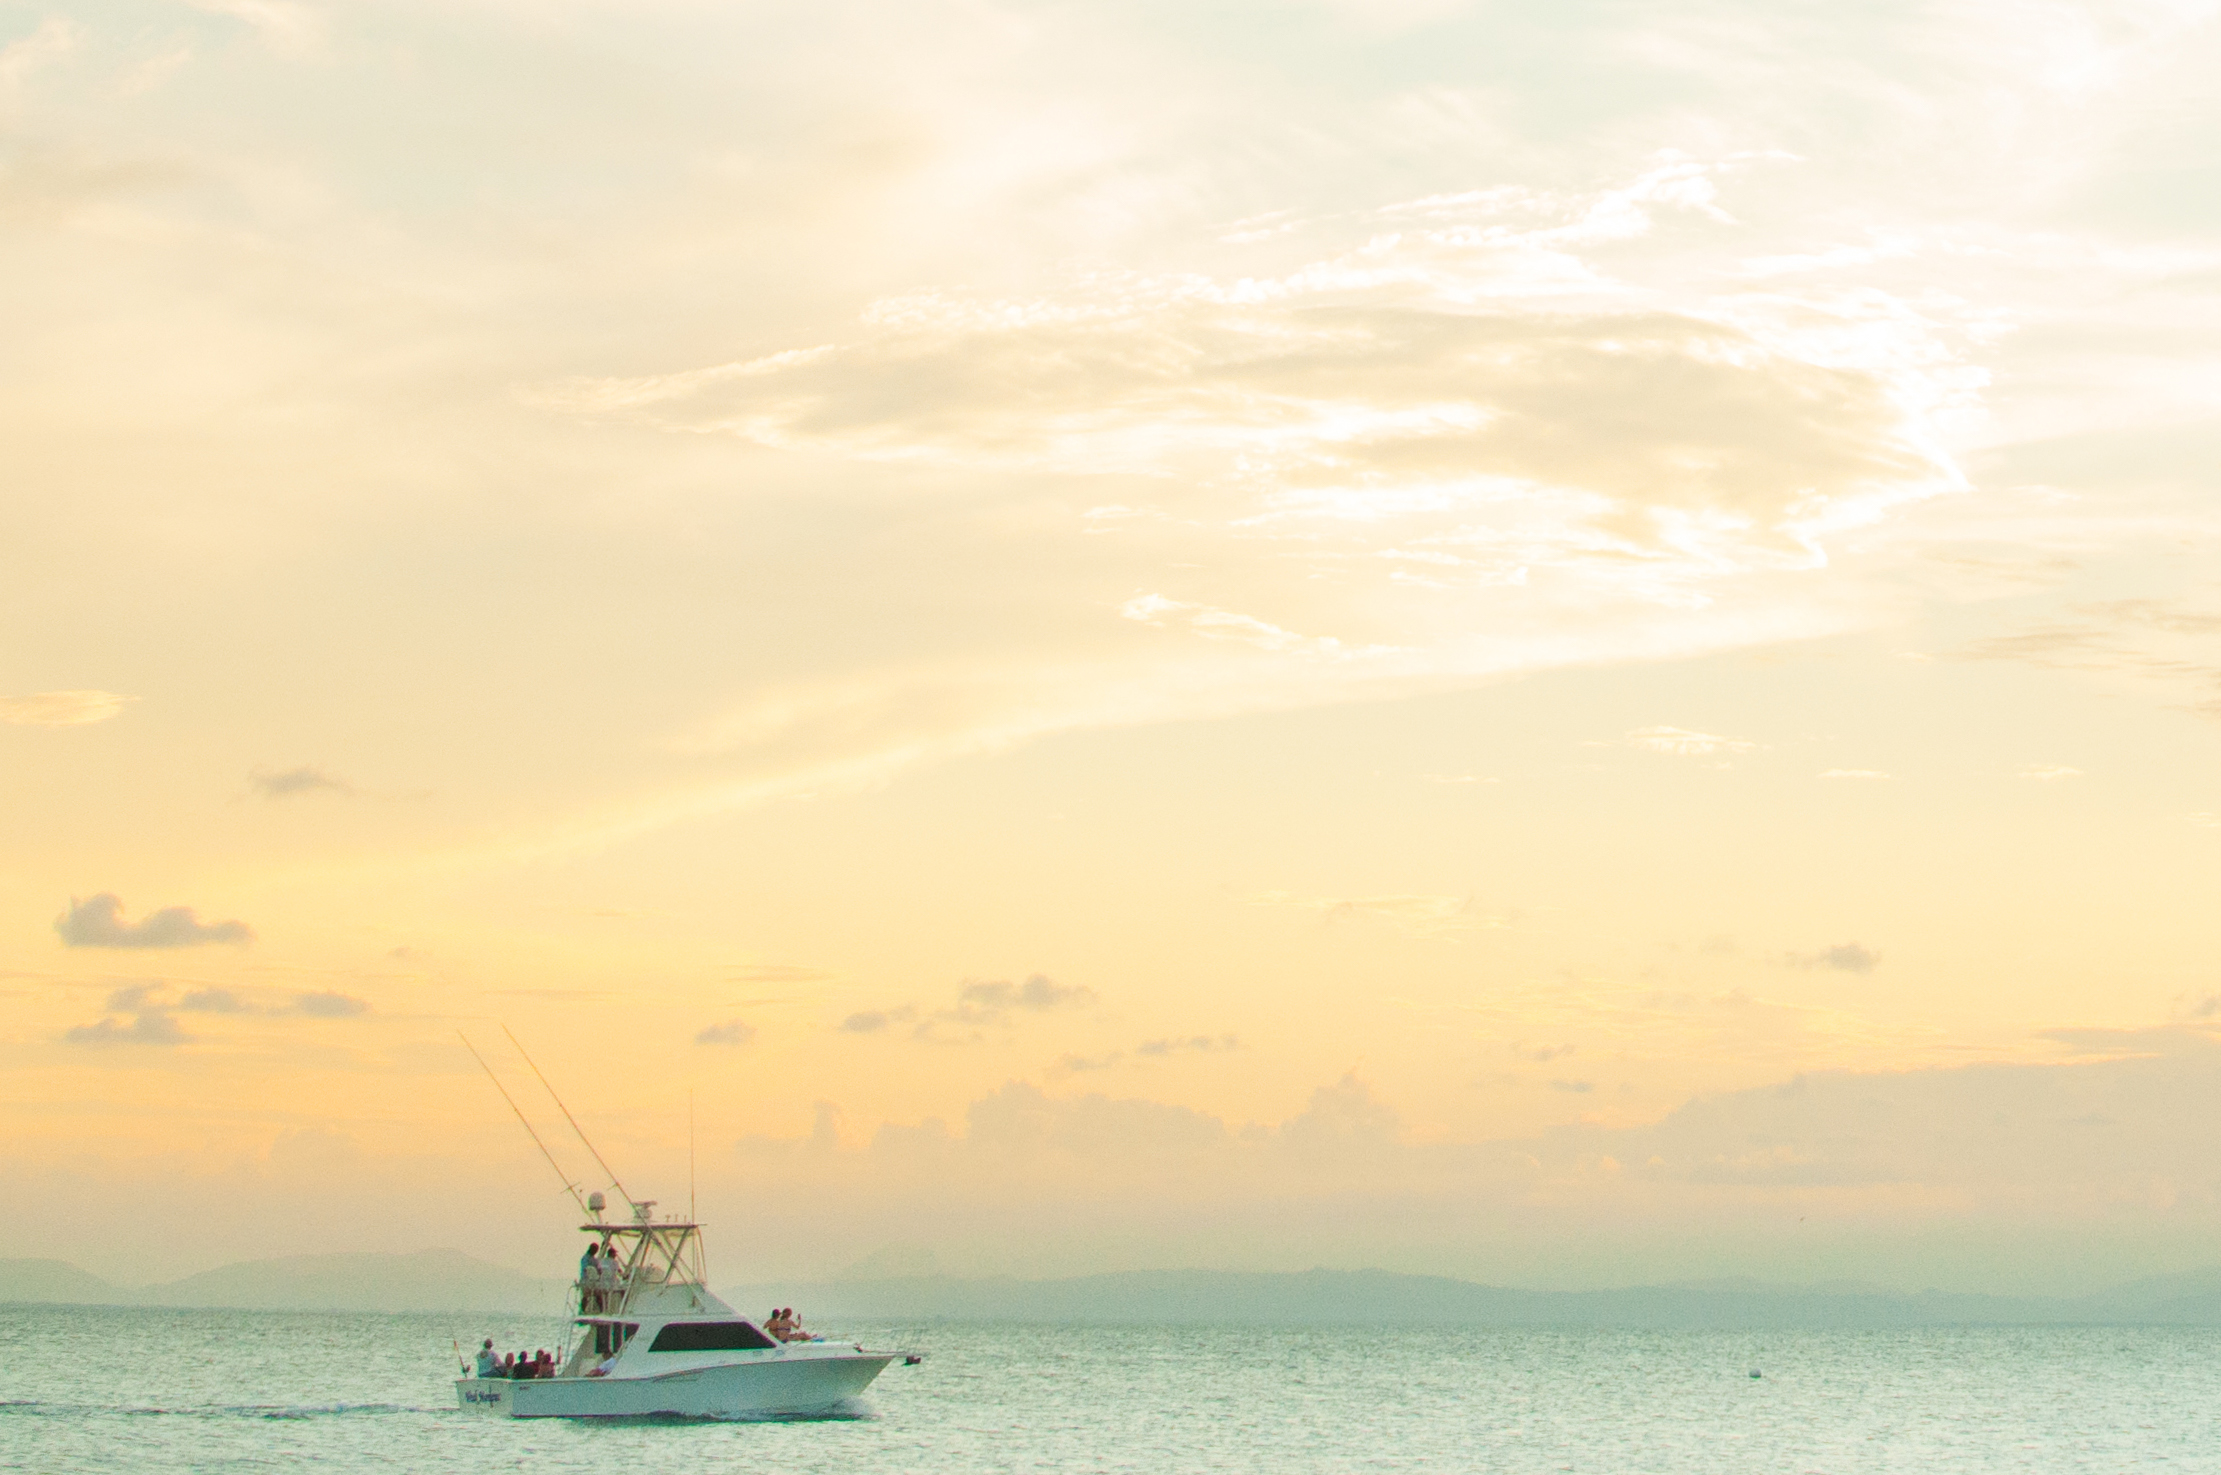 DEEP BLUE PRIVATE ADVENTURE CHARTERS